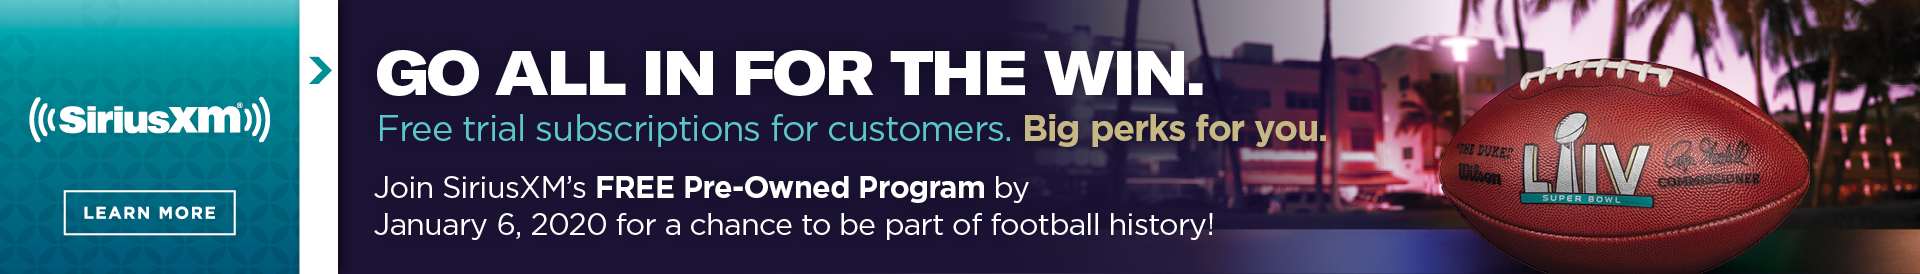 Join SiriusXM's FREE Pre-Owned Program by January 6, 2020 for a chance to be part of football history!